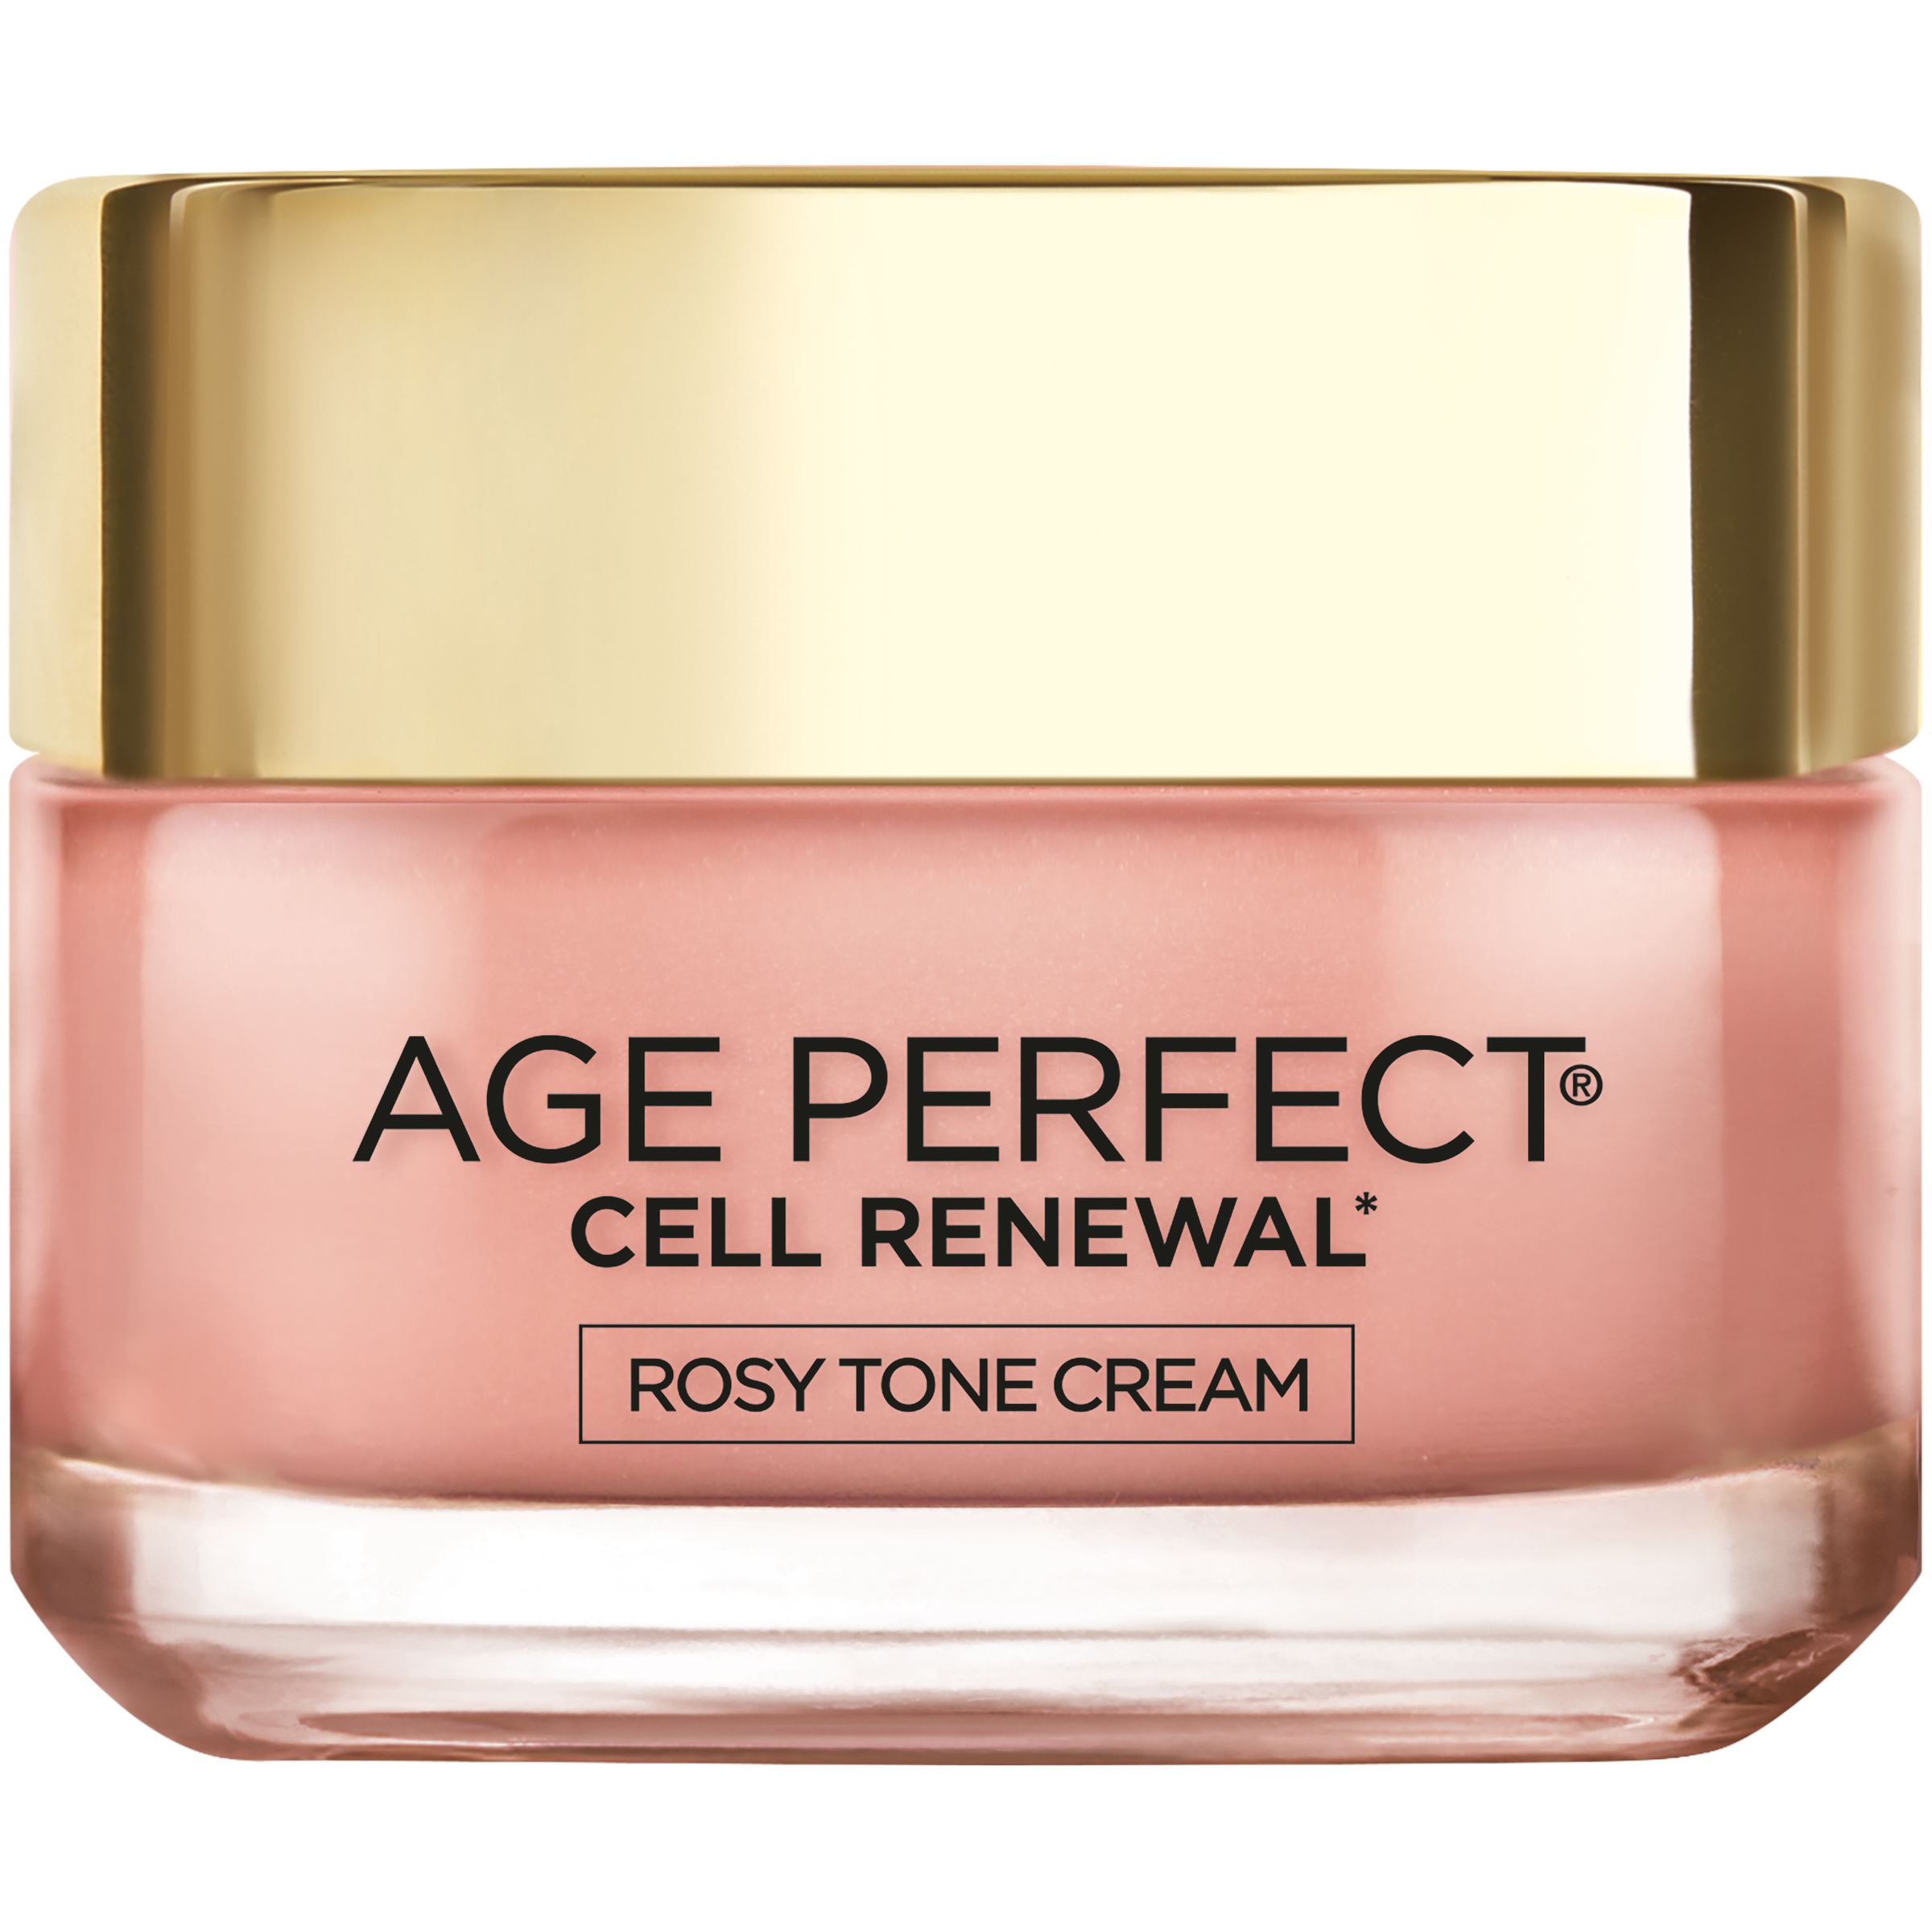 L'Oreal Paris Age Perfect Cell Renewal Rosy Tone Face Moisturizer